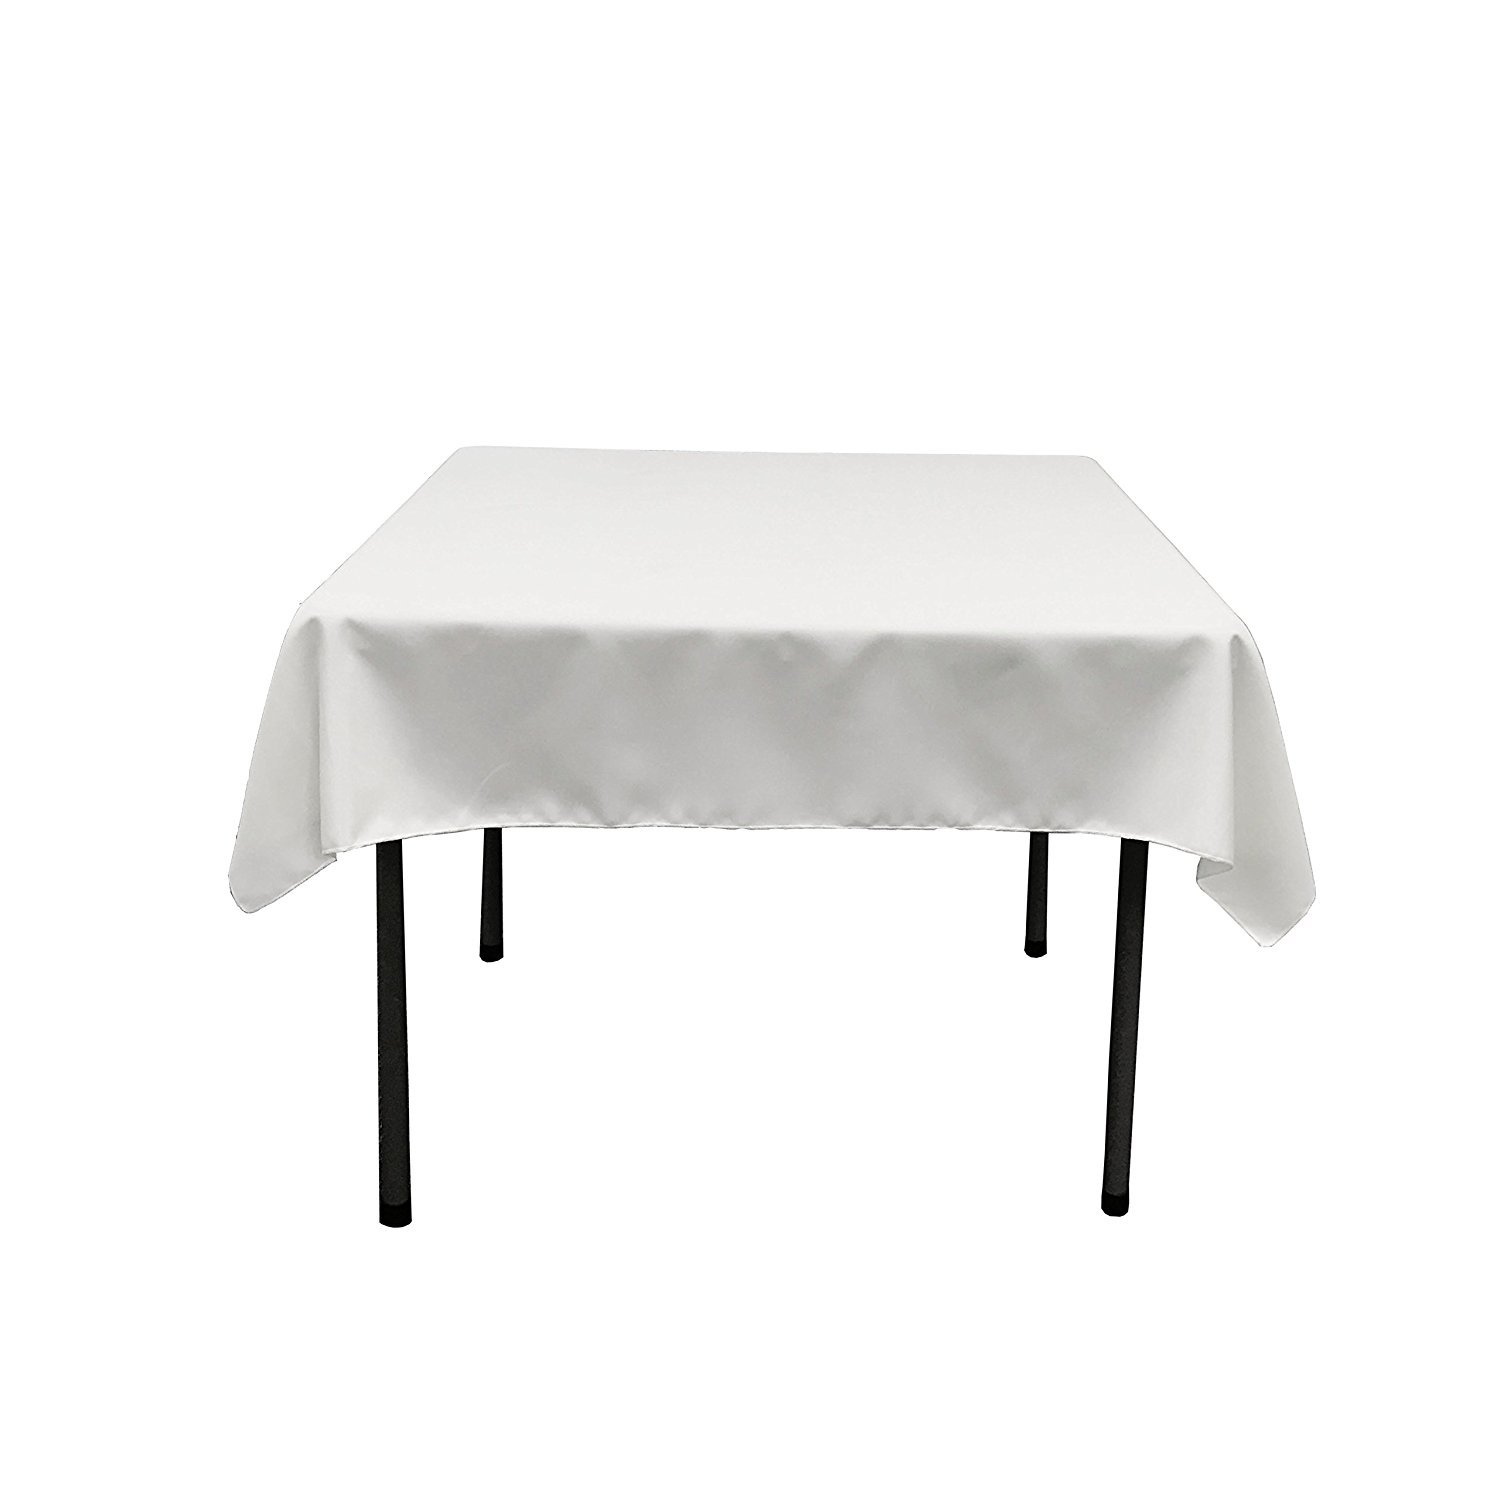 white linen table wedding tablecloths amazon com rh amazon com